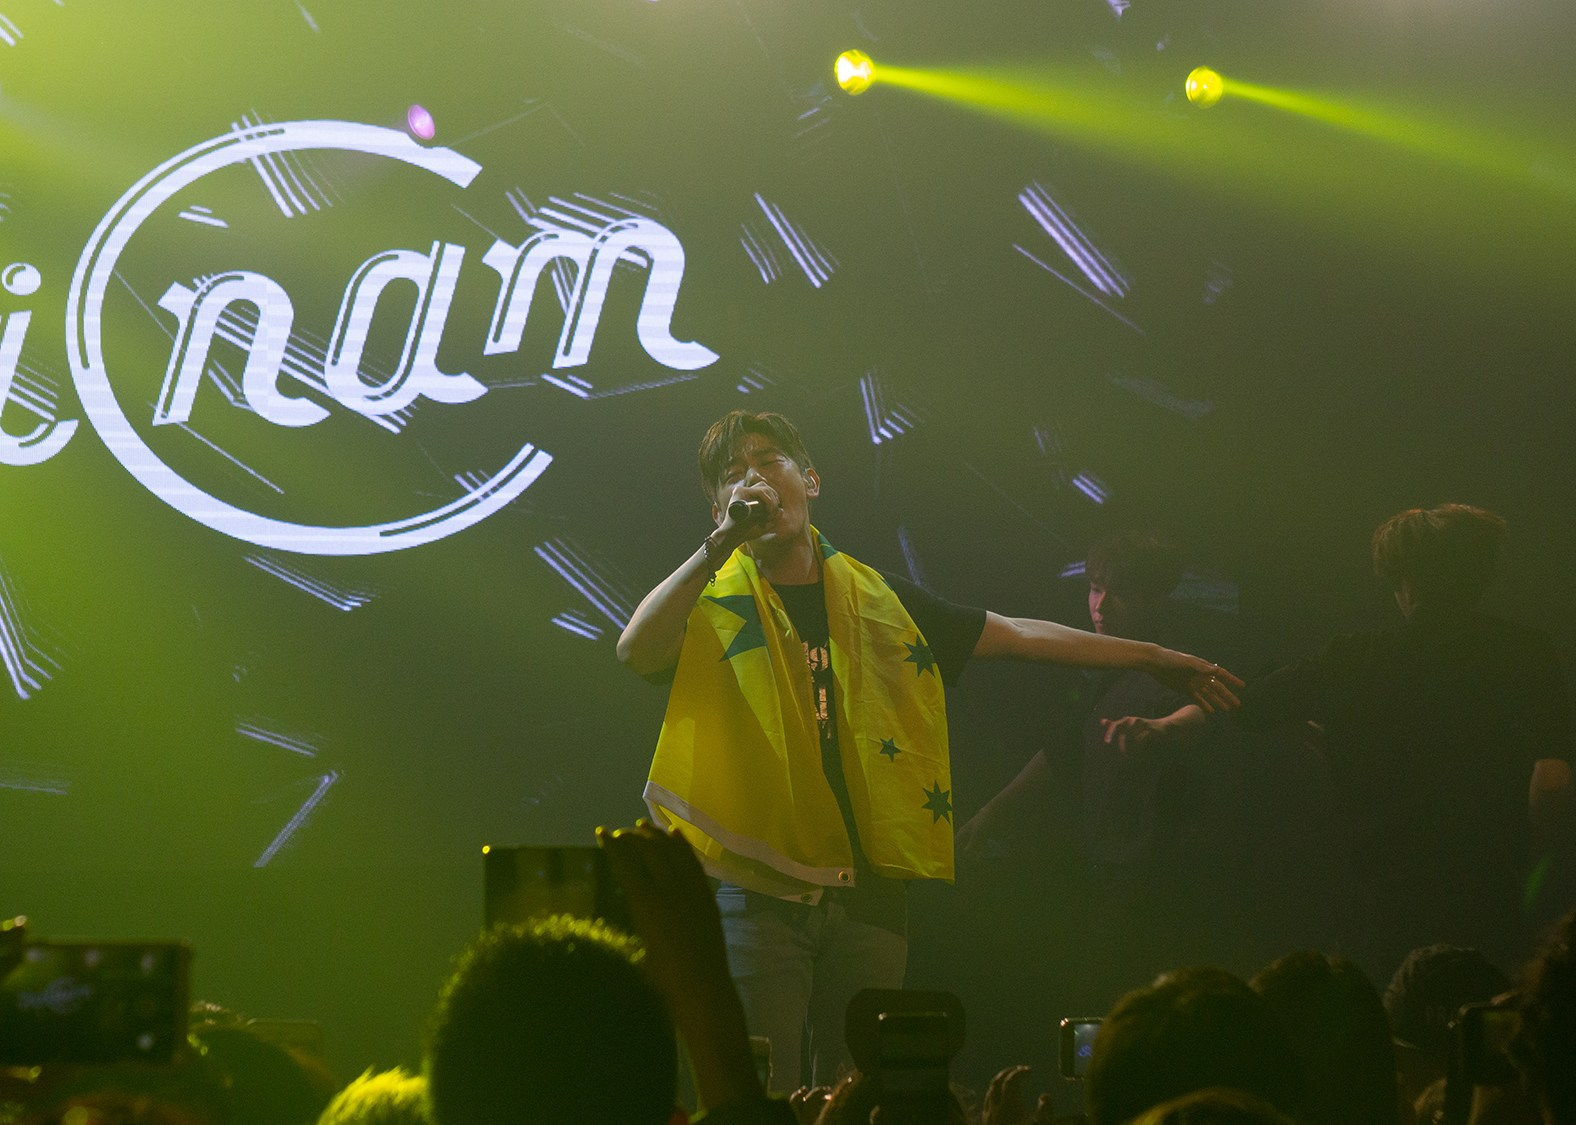 Eric Nam at 170 Russell, Melbourne, March 11, 2019 – LILITHIA REVIEWS